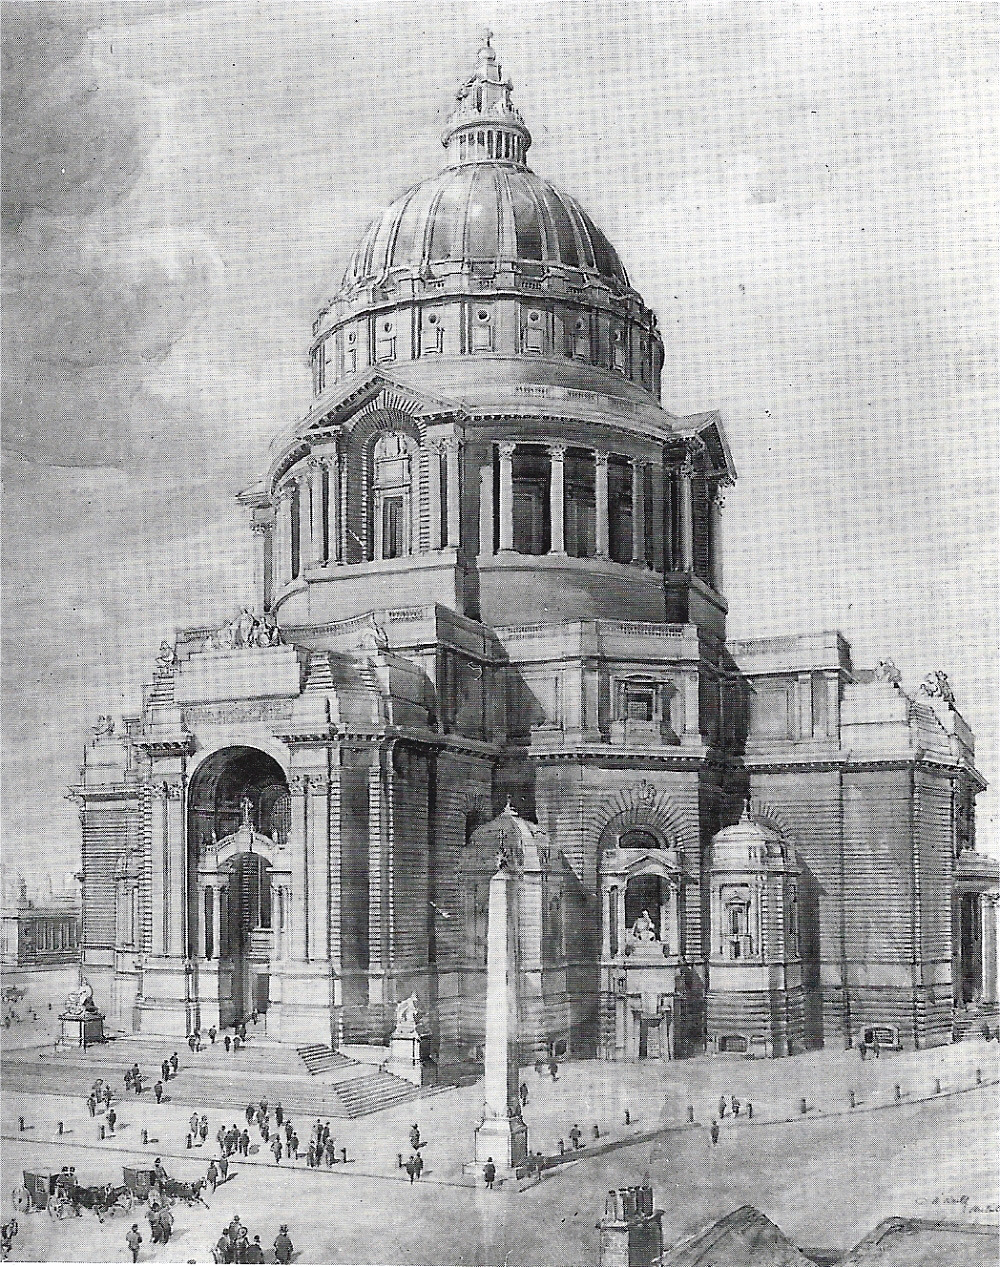 Reilly's design for the Cathedral in 1902, Liverpool